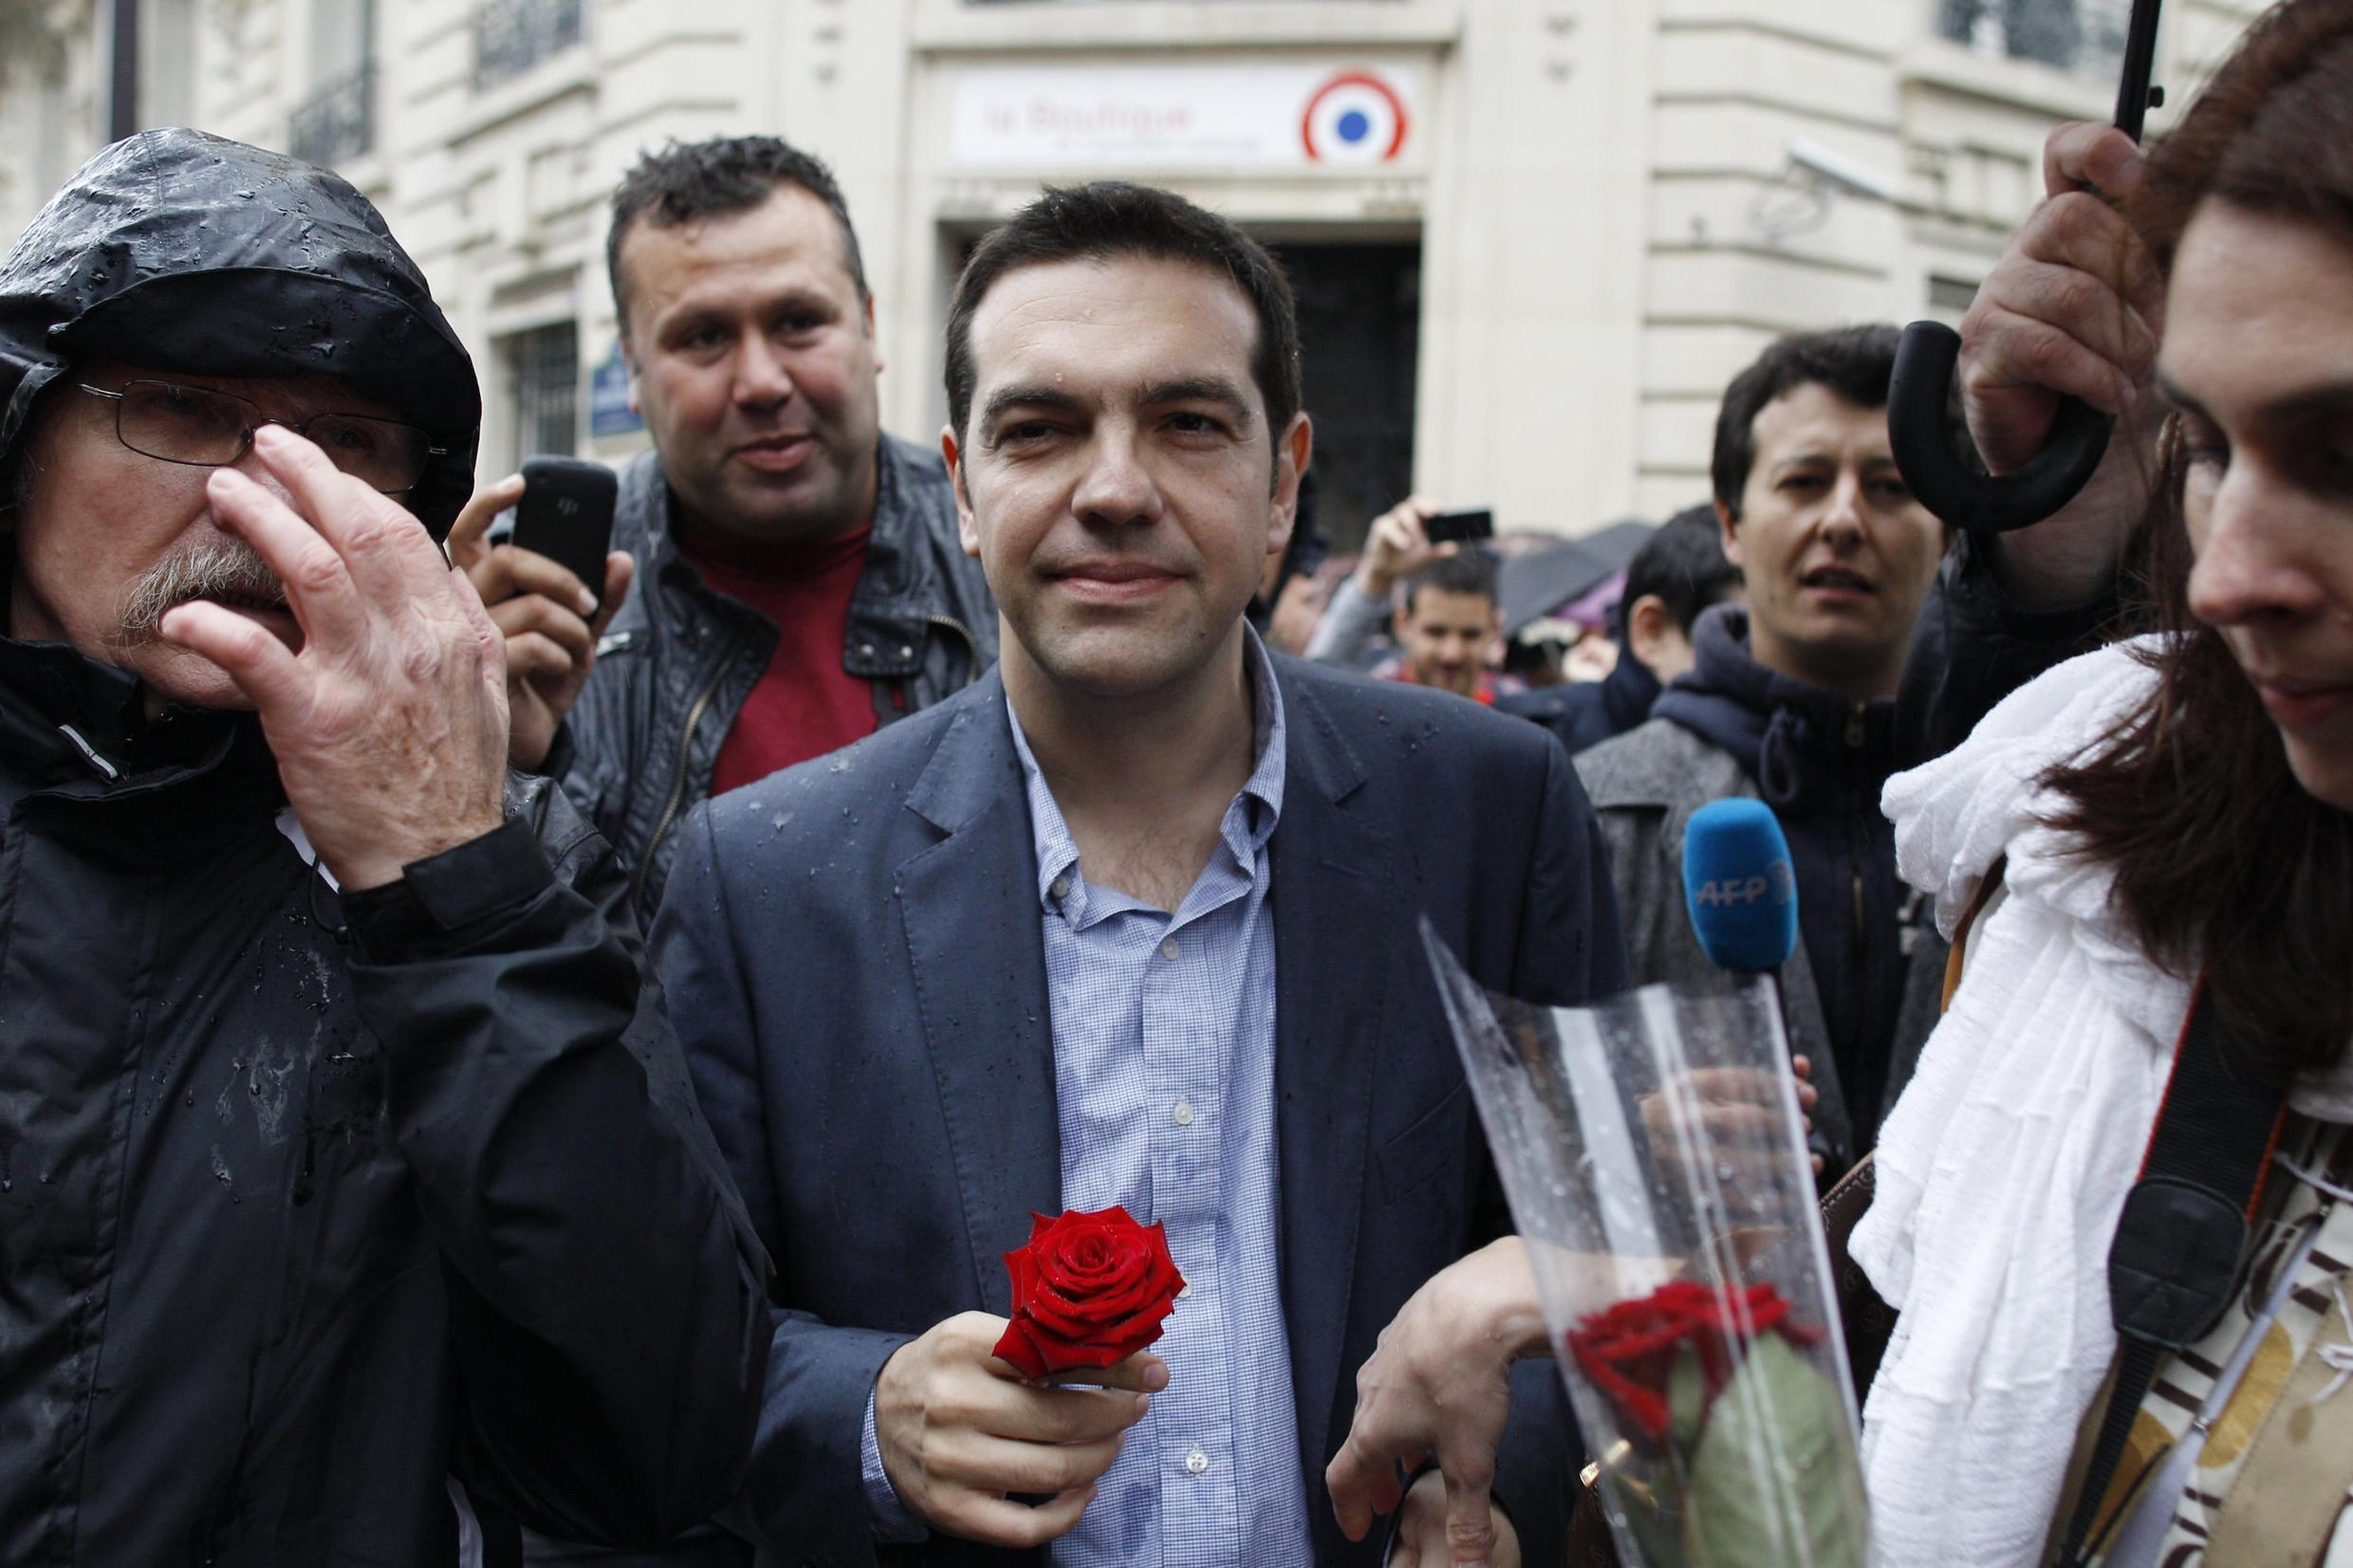 Alexis Tsipras, head of Greek Syriza party, attends a gathering organized by the French radical left in Paris, 21 May, 2012